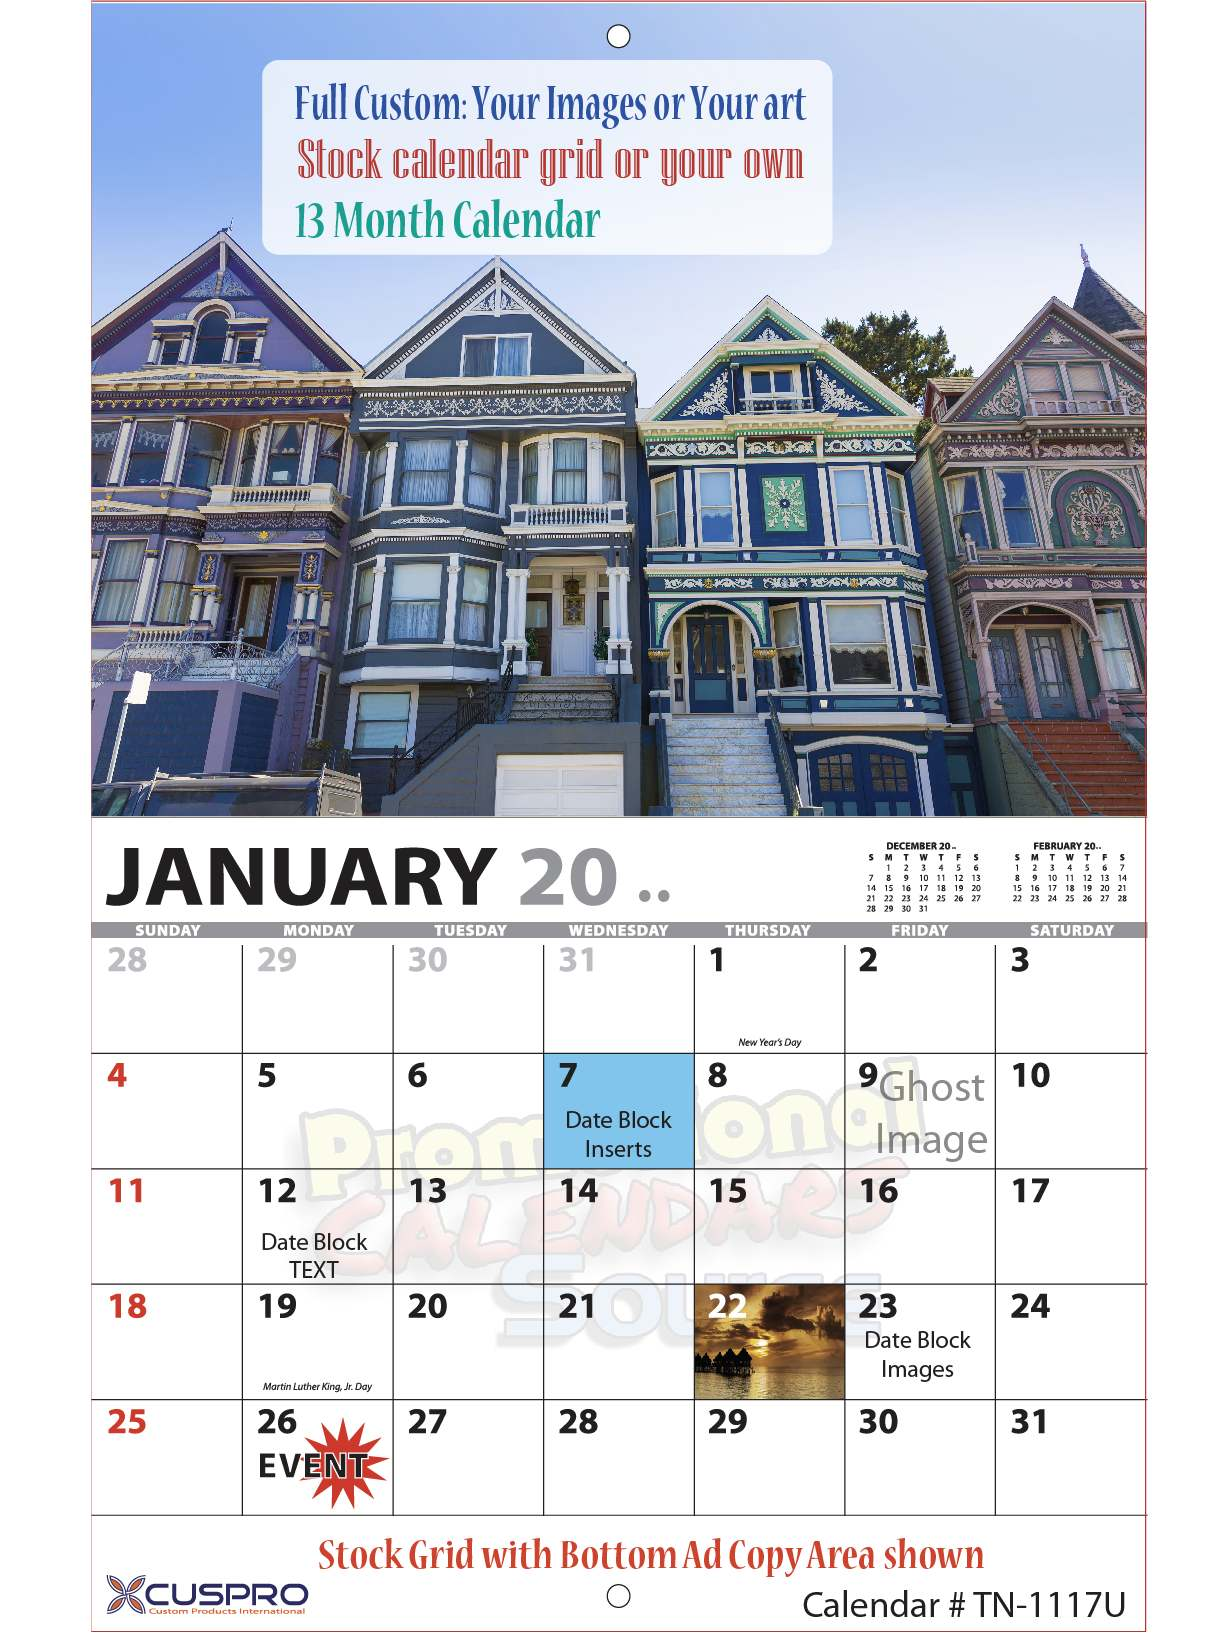 Fully Custom Photo Wall Calendar, 13 Months, Stapled, 11x17, Full-Color Imprint, Your Images, Your Art